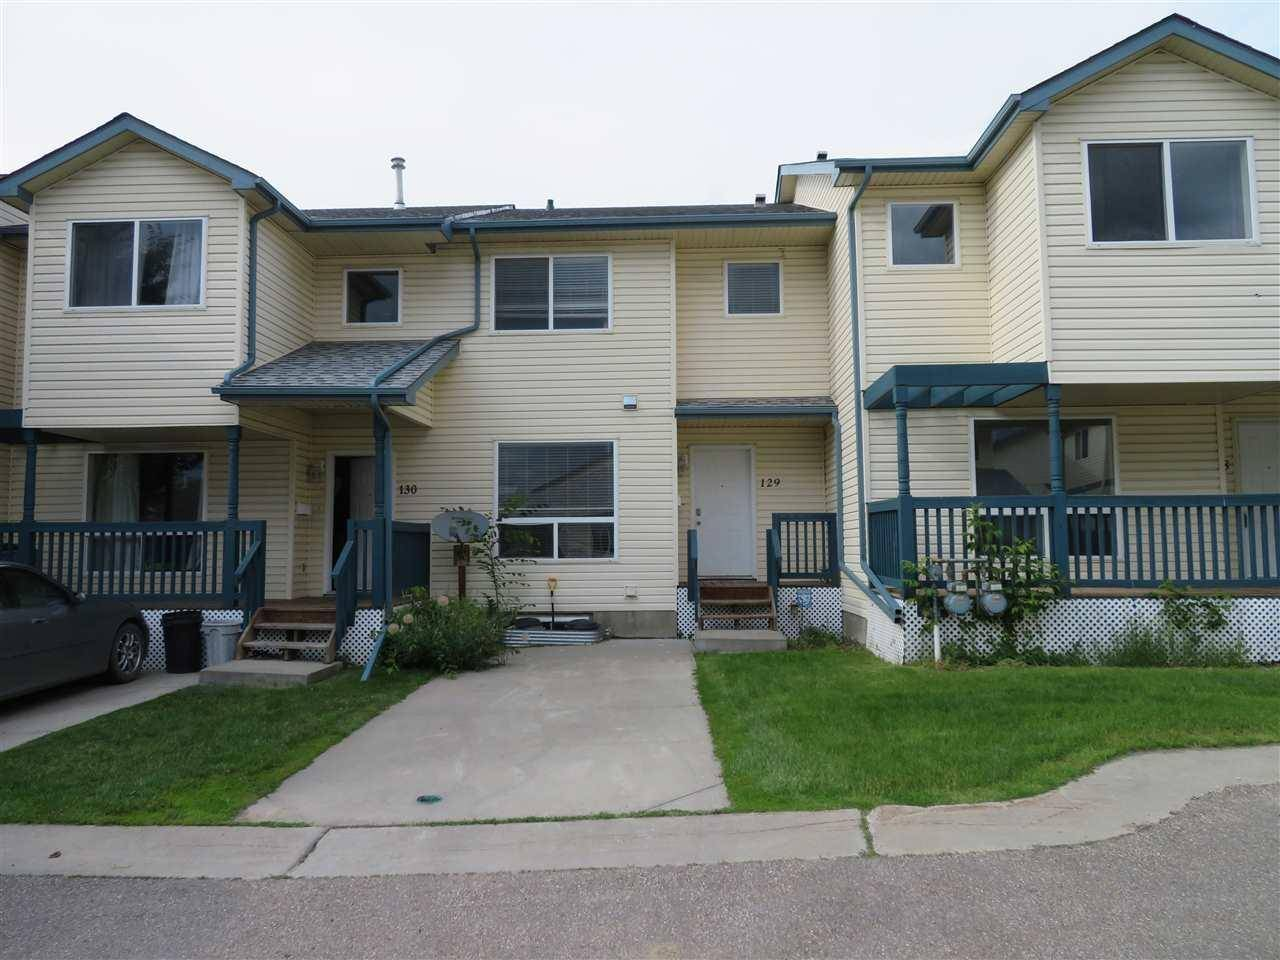 Townhouse for sale at 10909 106 St Nw Unit 129 Edmonton Alberta - MLS: E4164659